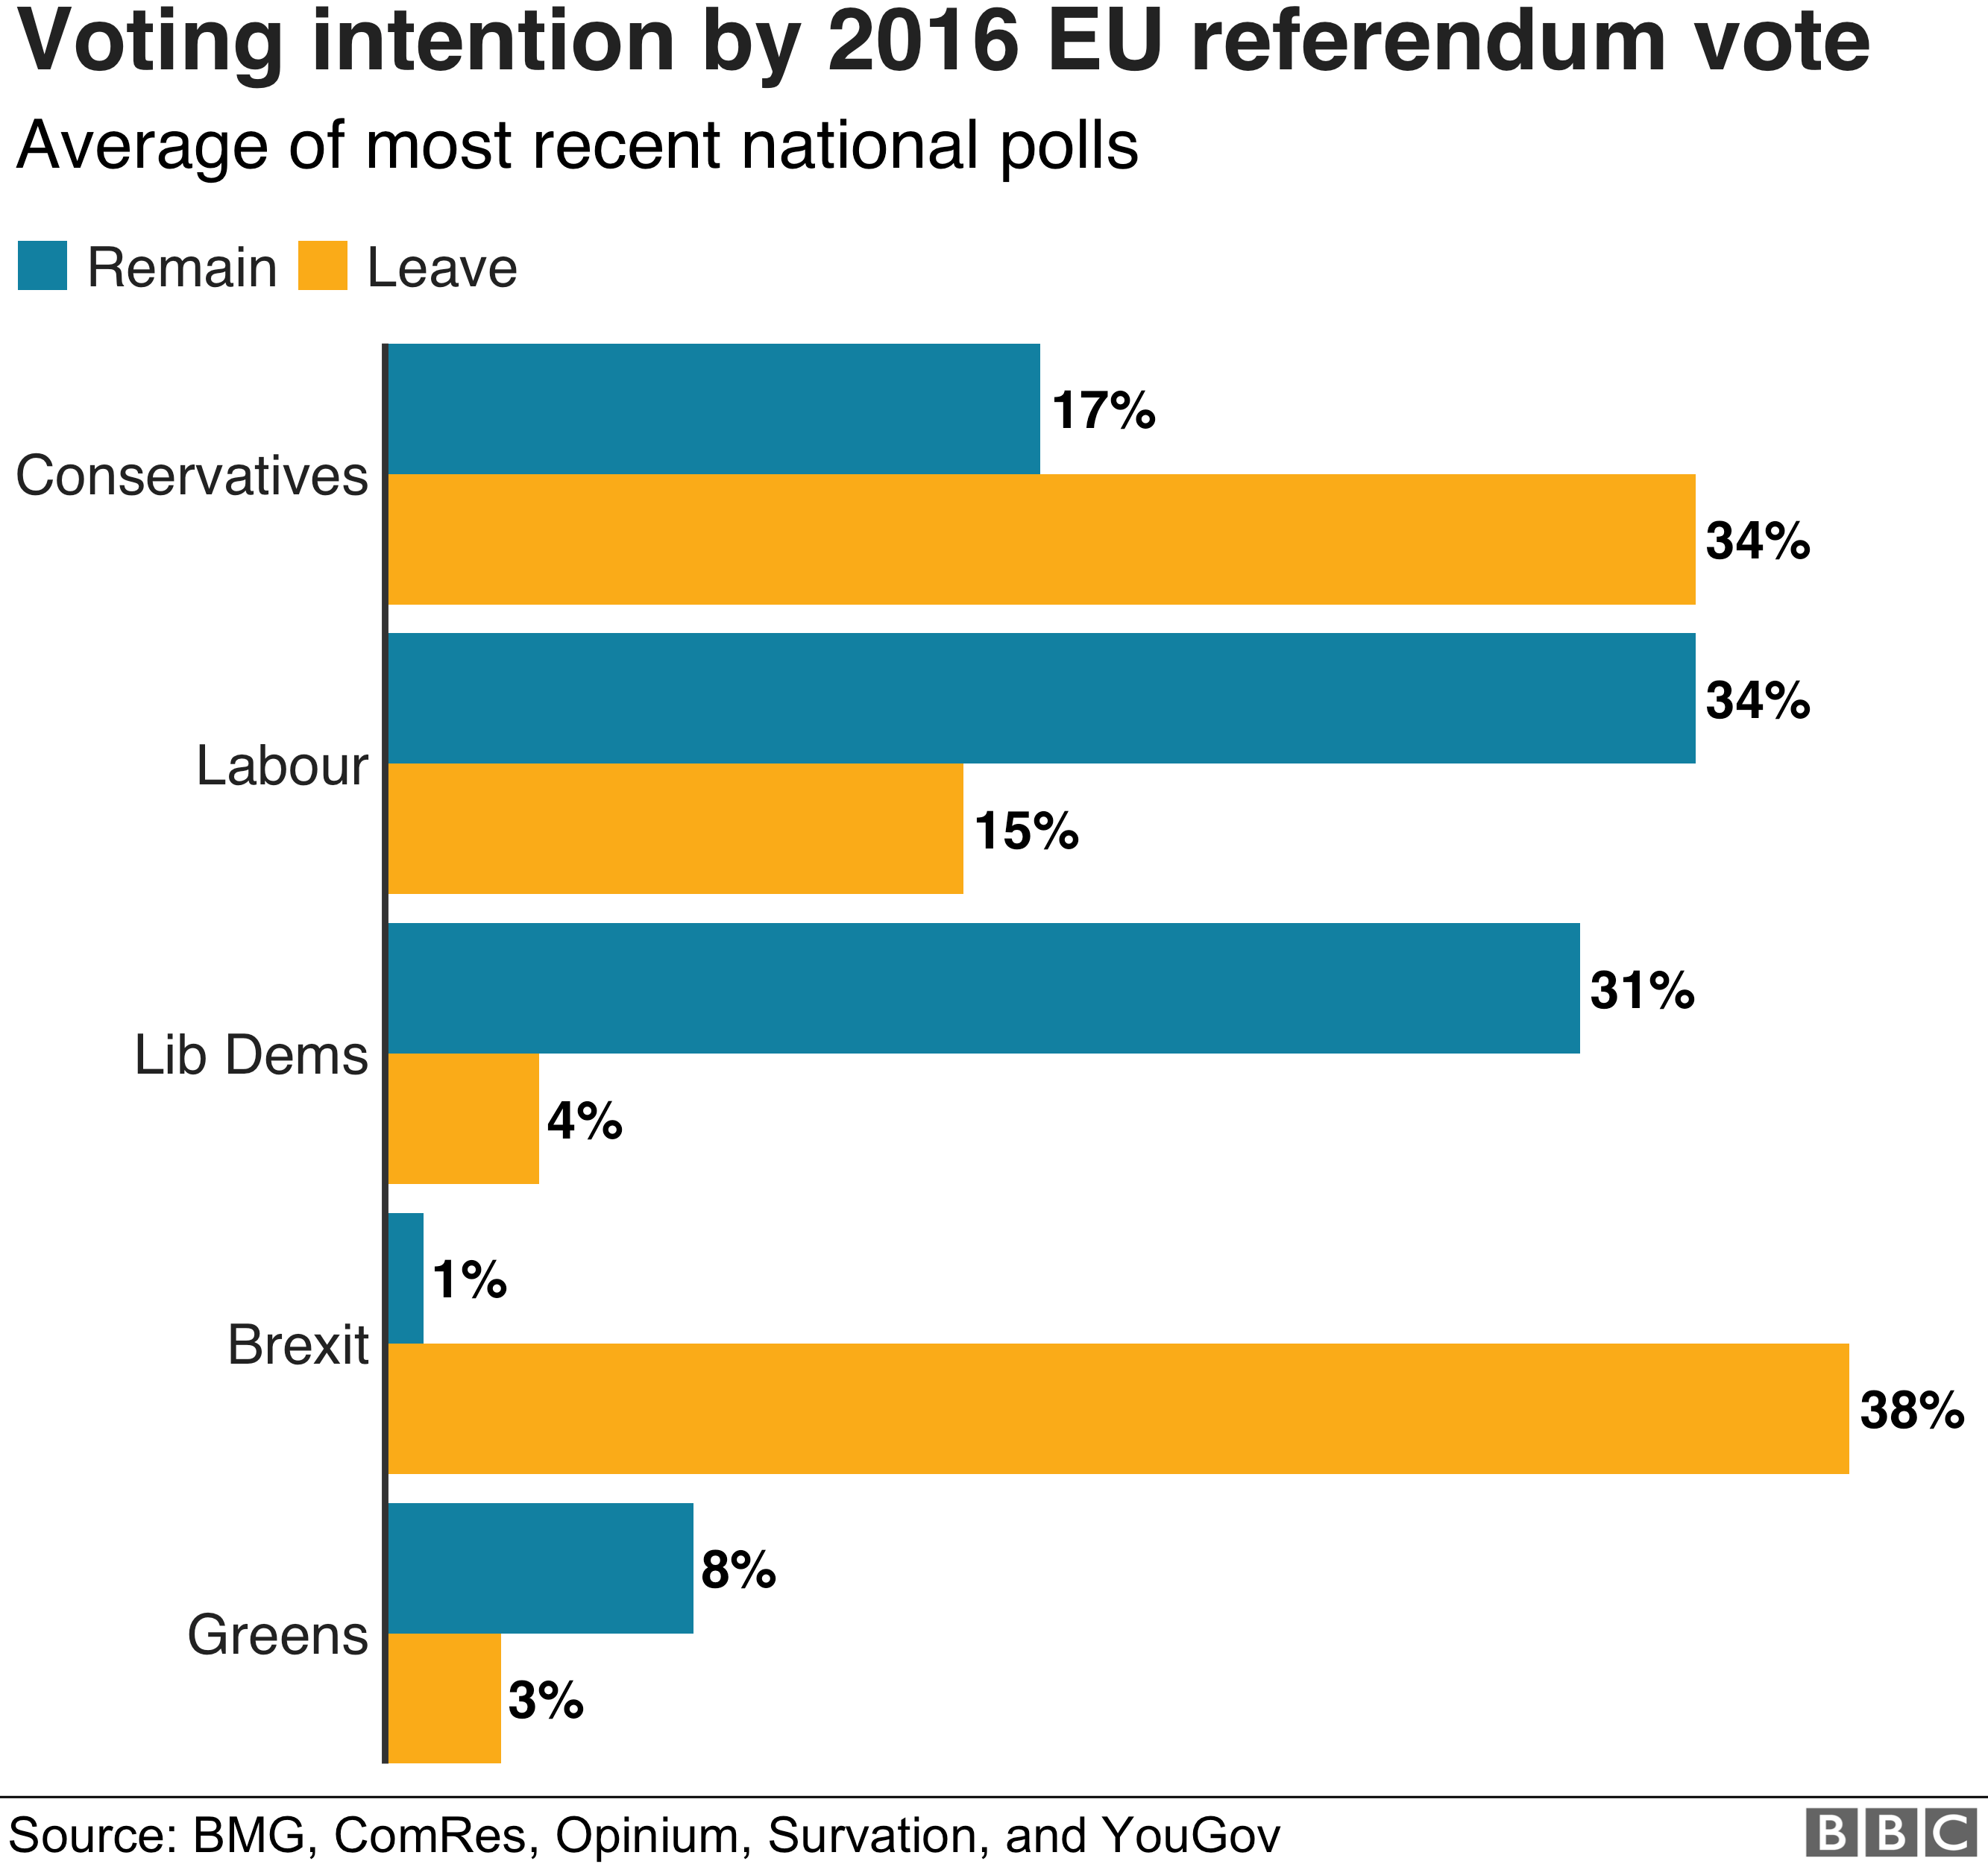 Chart showing party support broken down by how the electorate voted in the 2016 referendum. It shows that the Brexit Party nearly all of its support from leave voters and the Lib Dem from remain voters. For Labour the Tories, it's much closer - although the Tories draw more support from leave voters and Labour from remain voters.